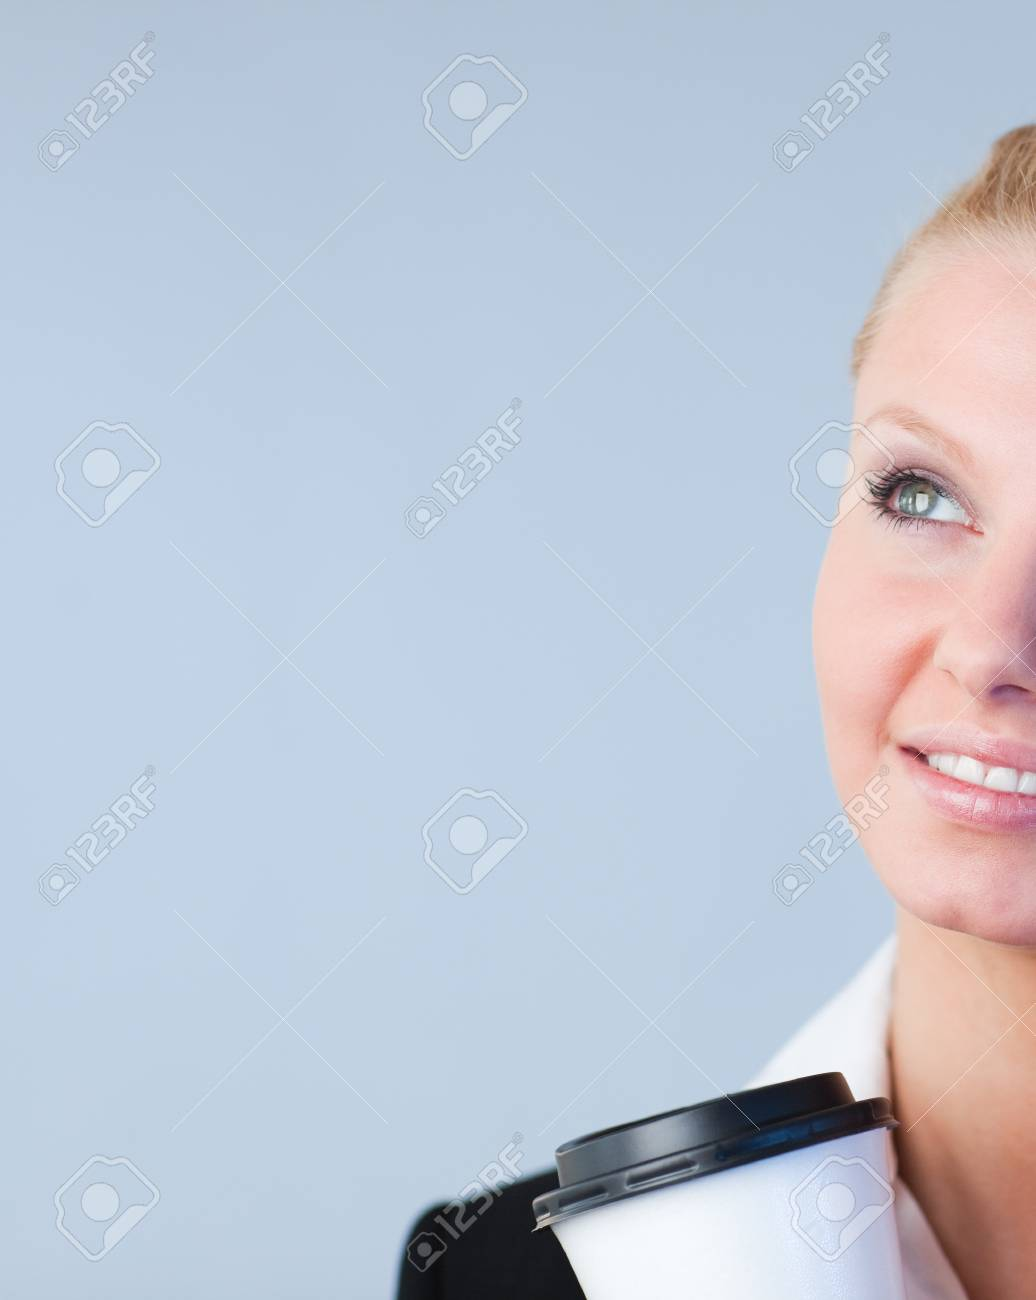 Woman holding a take away coffee container Stock Photo - 10109623